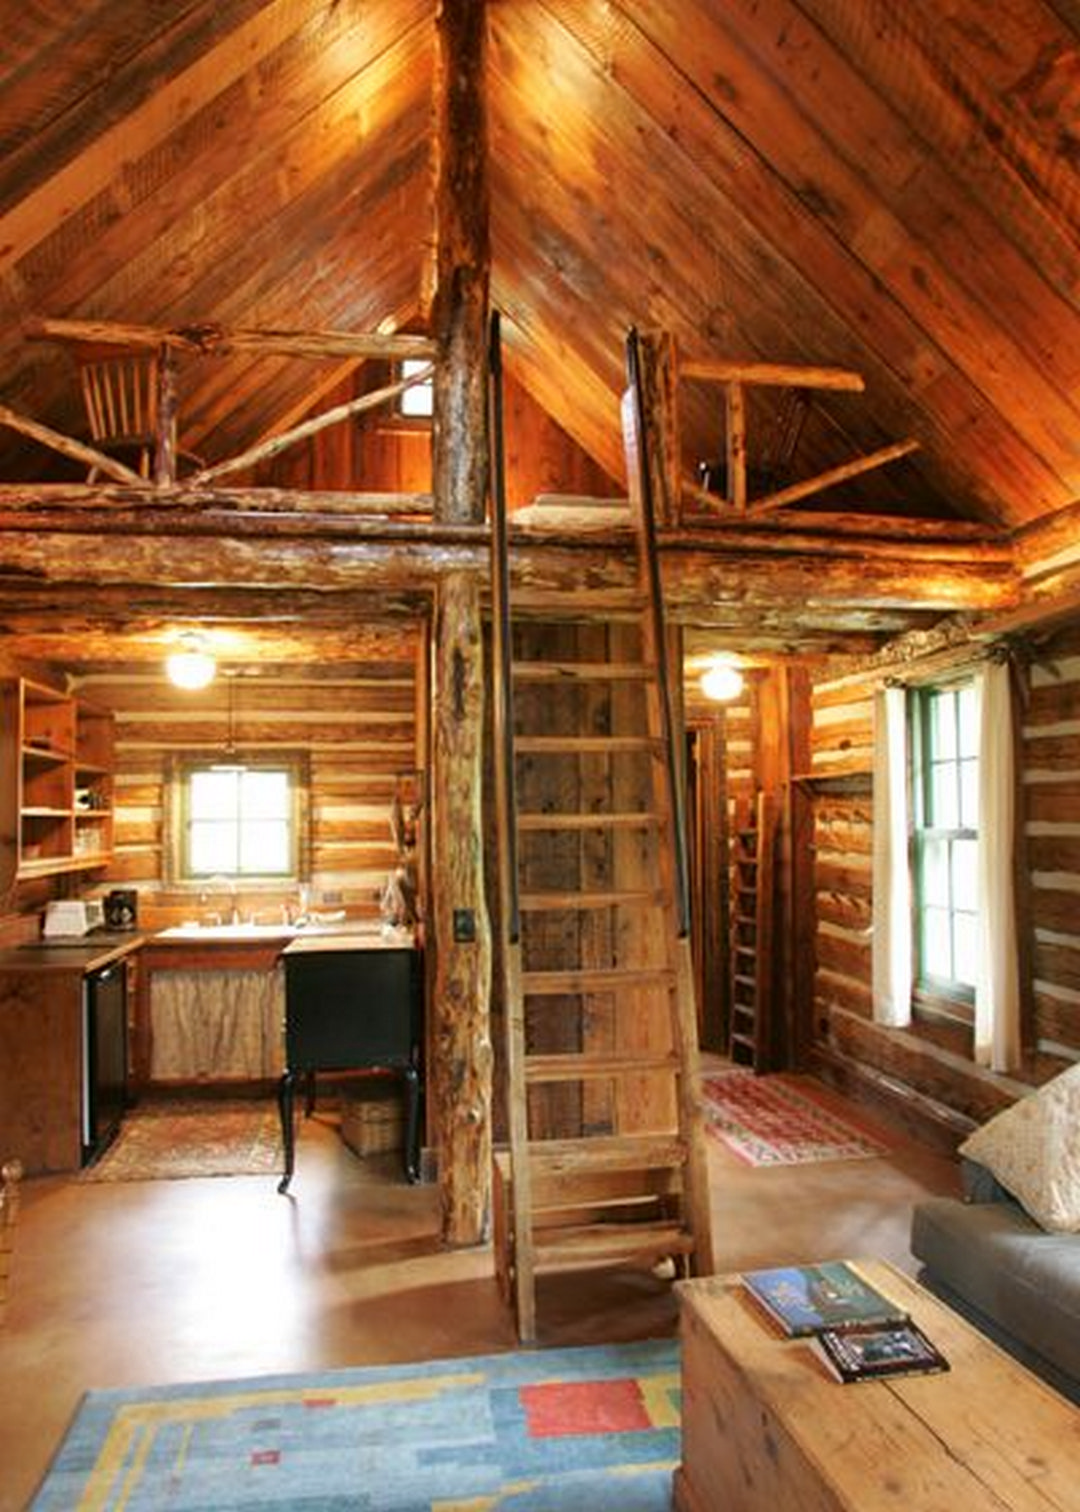 Rustic Cabin Interior Ideas